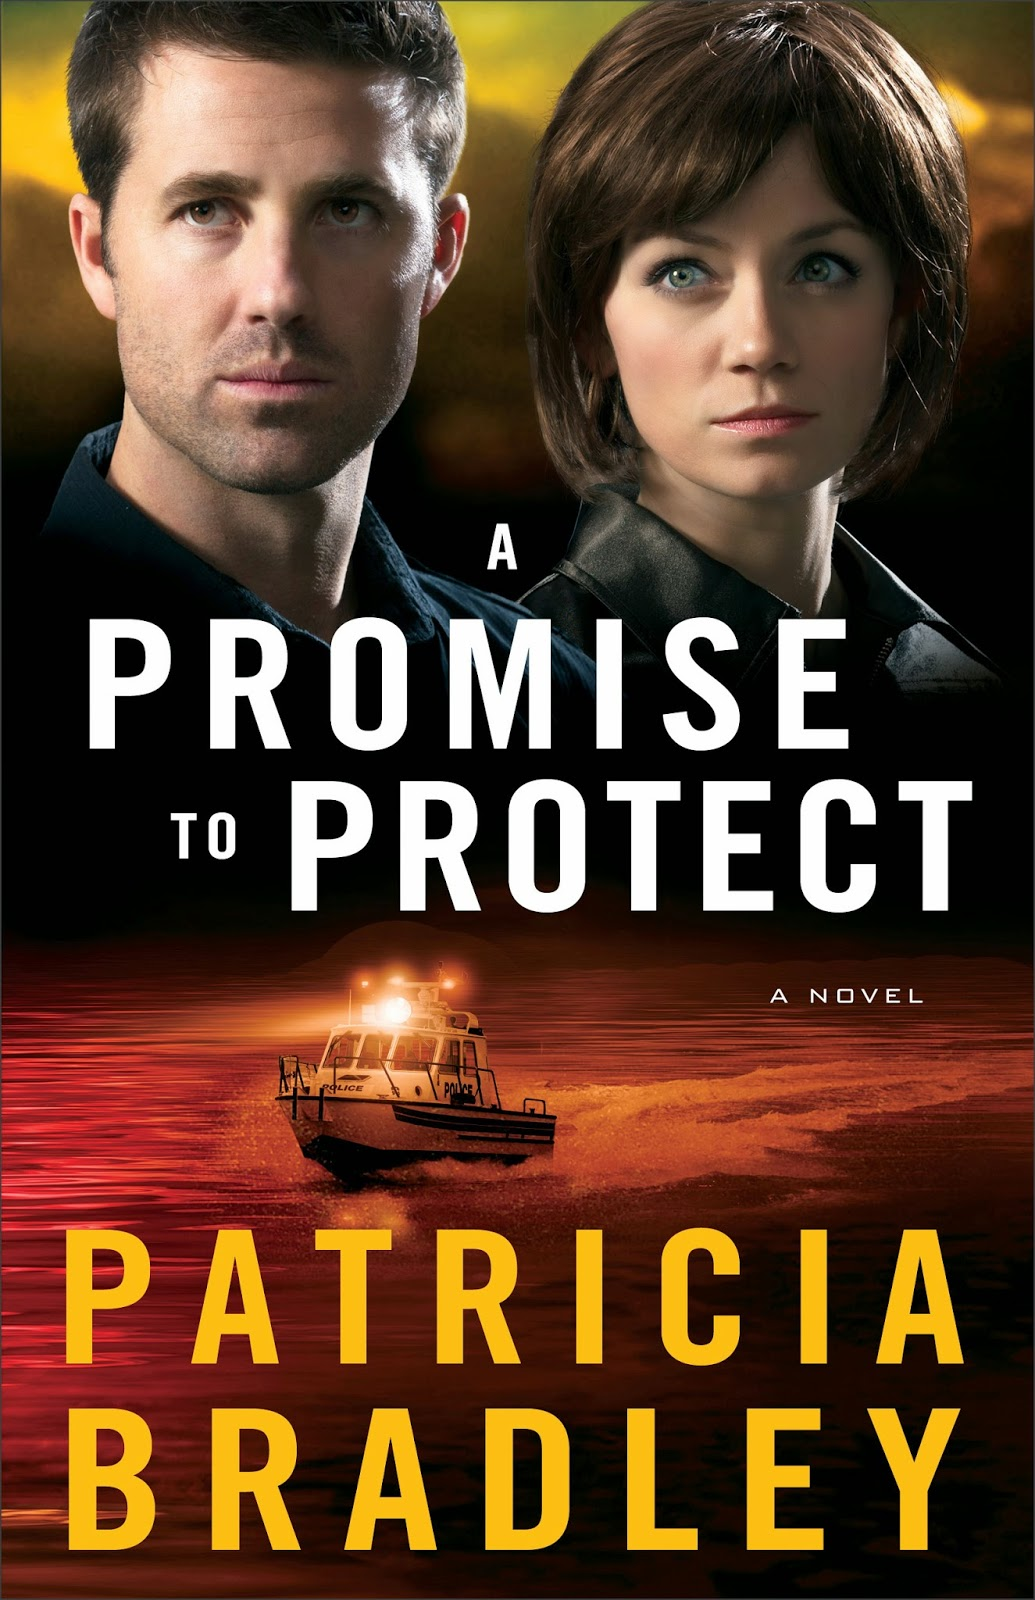 book review of A Promise To Protect by Patricia Bradley (Revell) by papertapepins